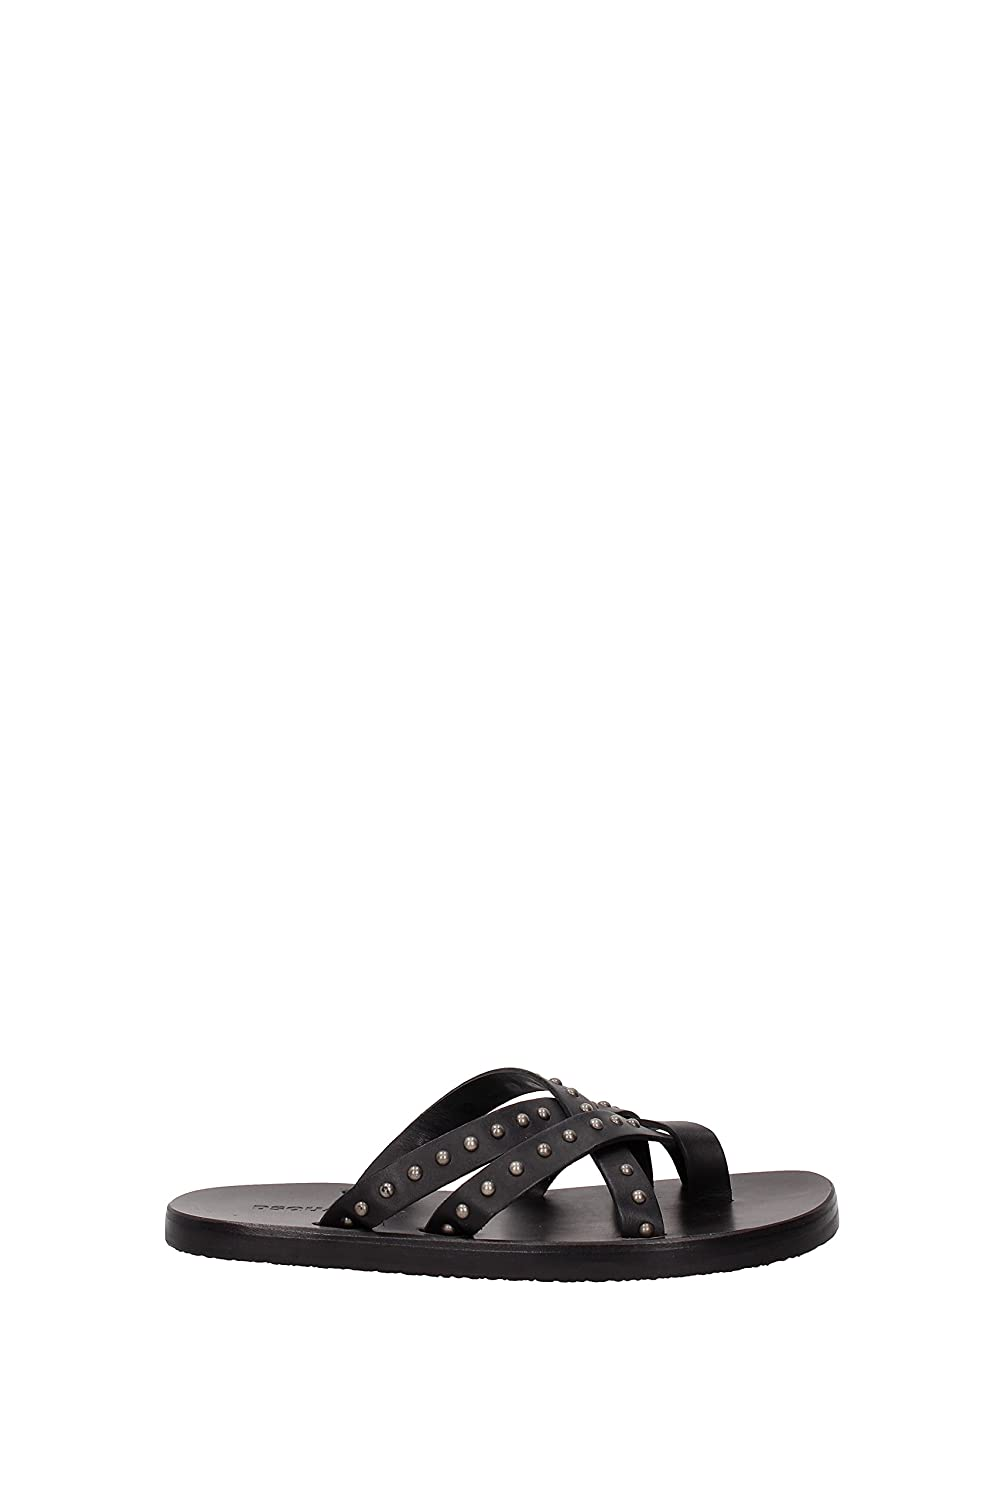 d0b7959bd60 Dsquared2 Tongs Jesus on The Beach Homme - Cuir (SA4135382124) 39 EU